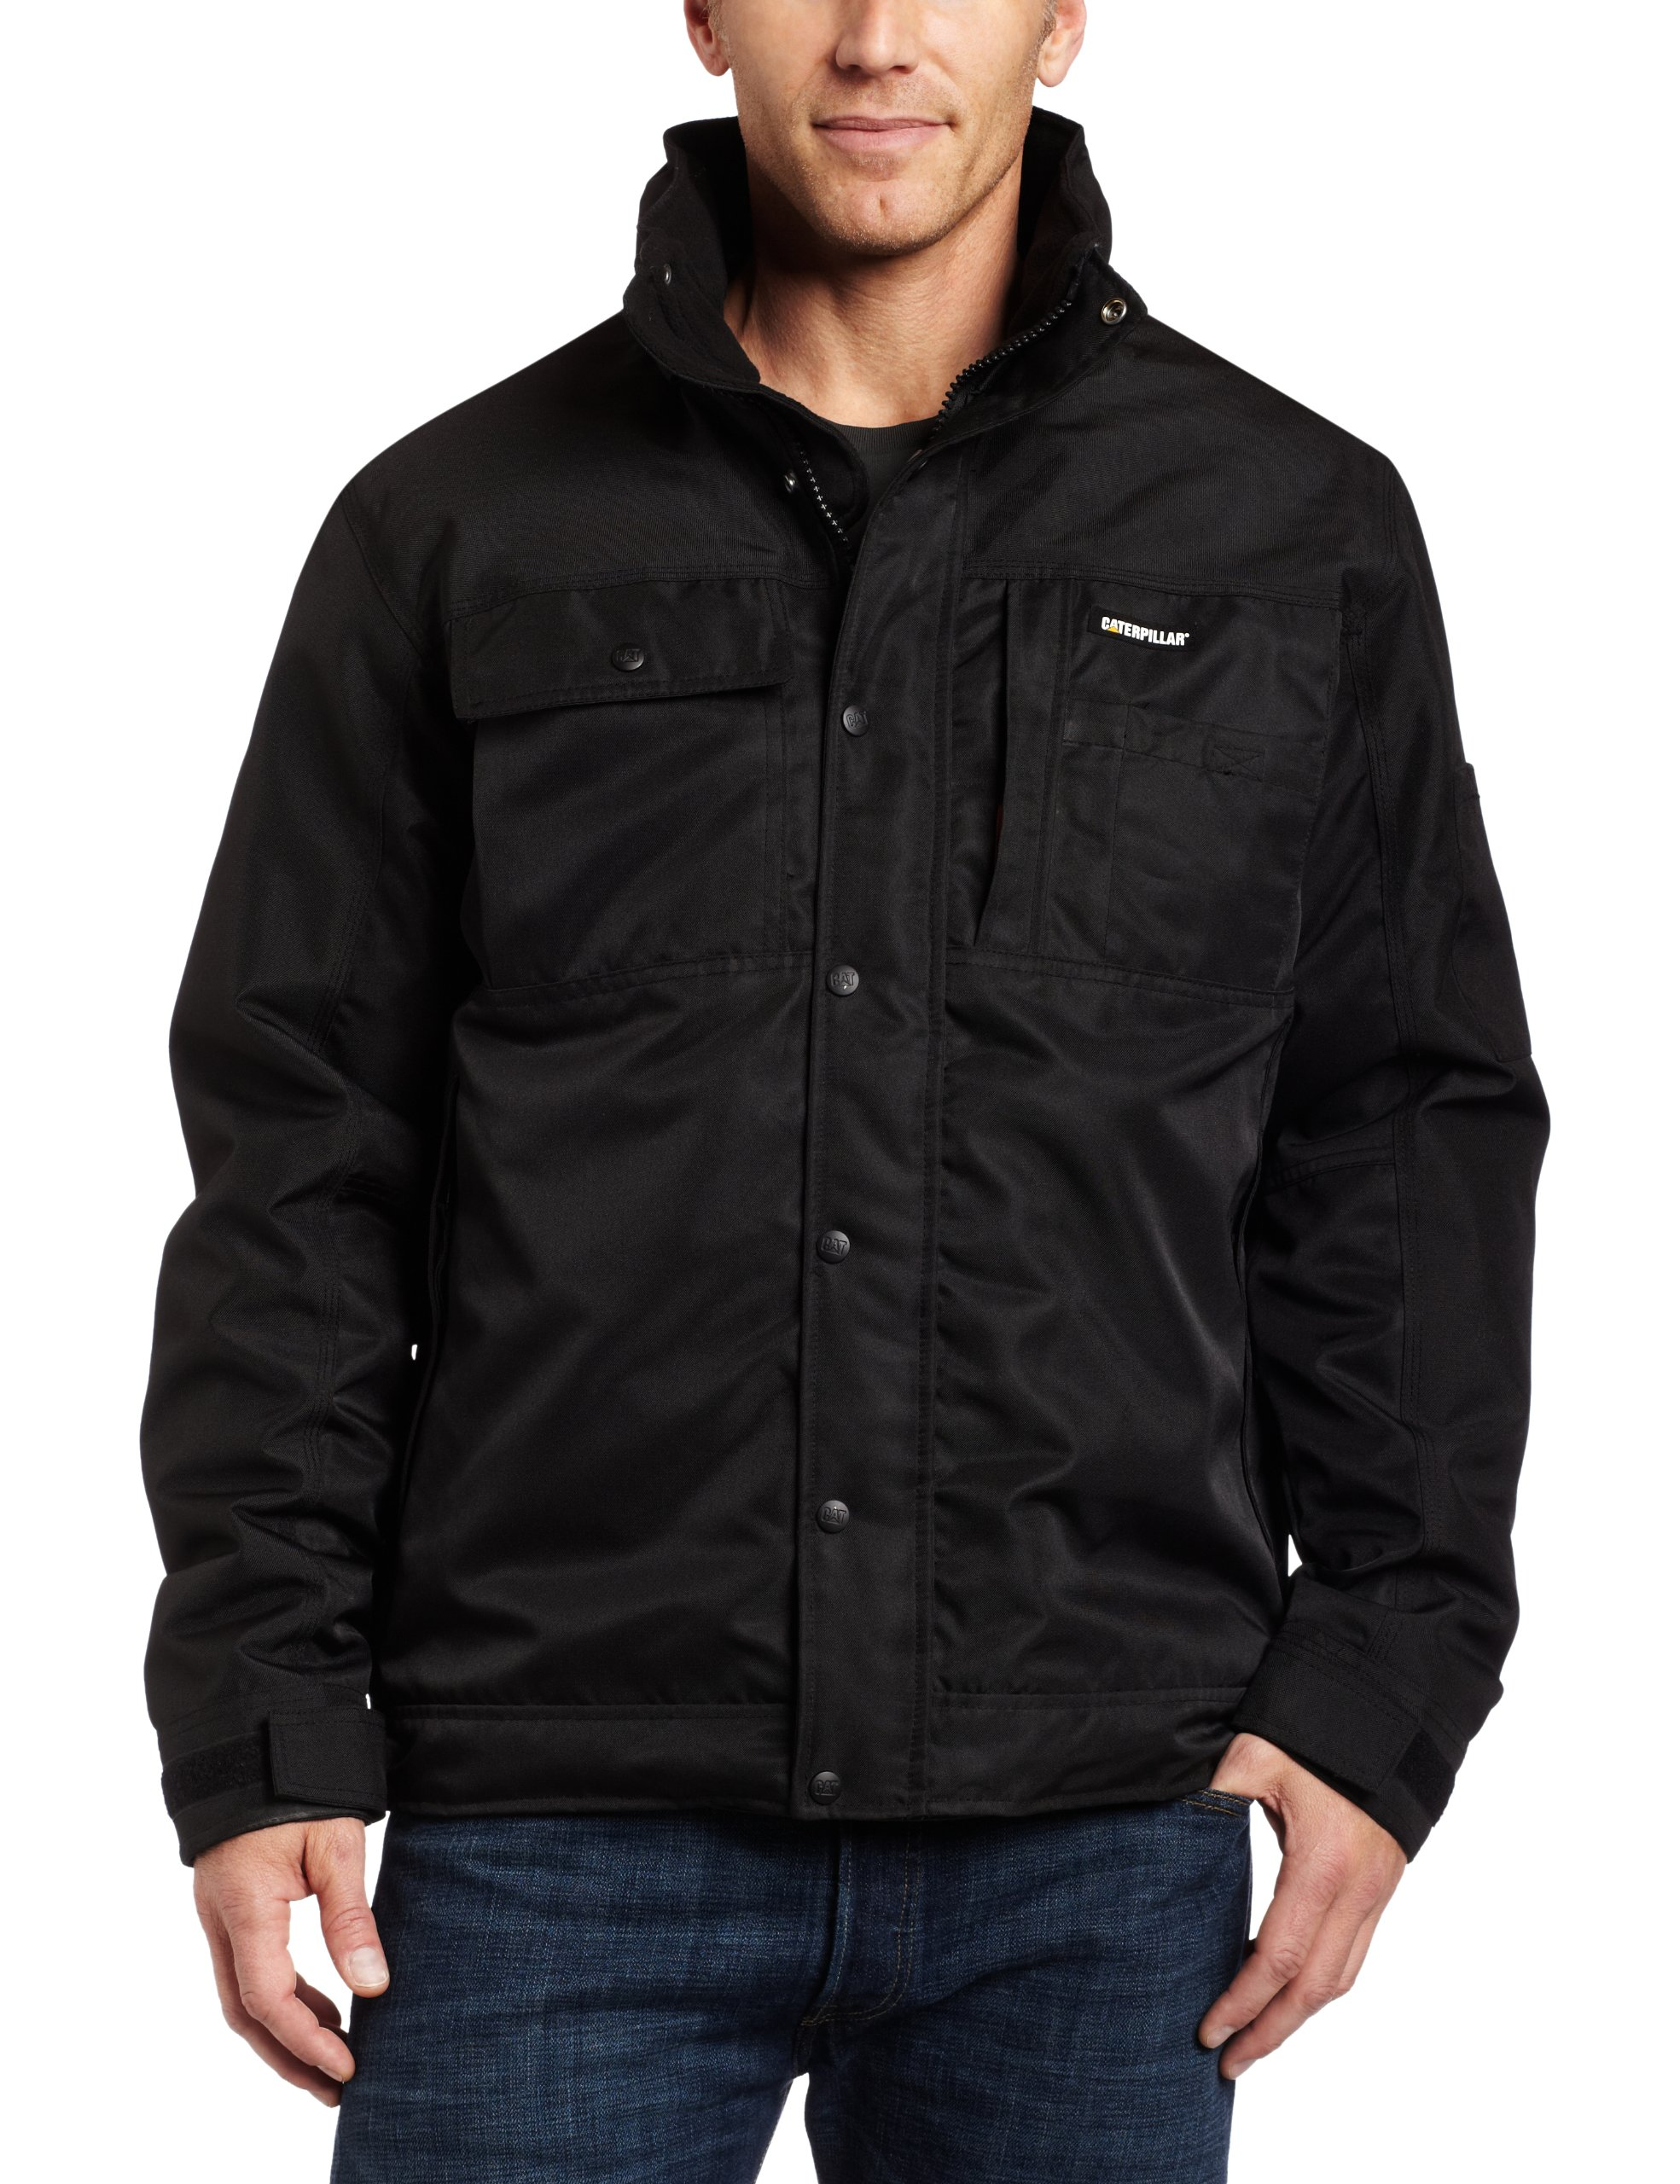 Caterpillar Insulated Twill Jacket, Black, Medium by Caterpillar